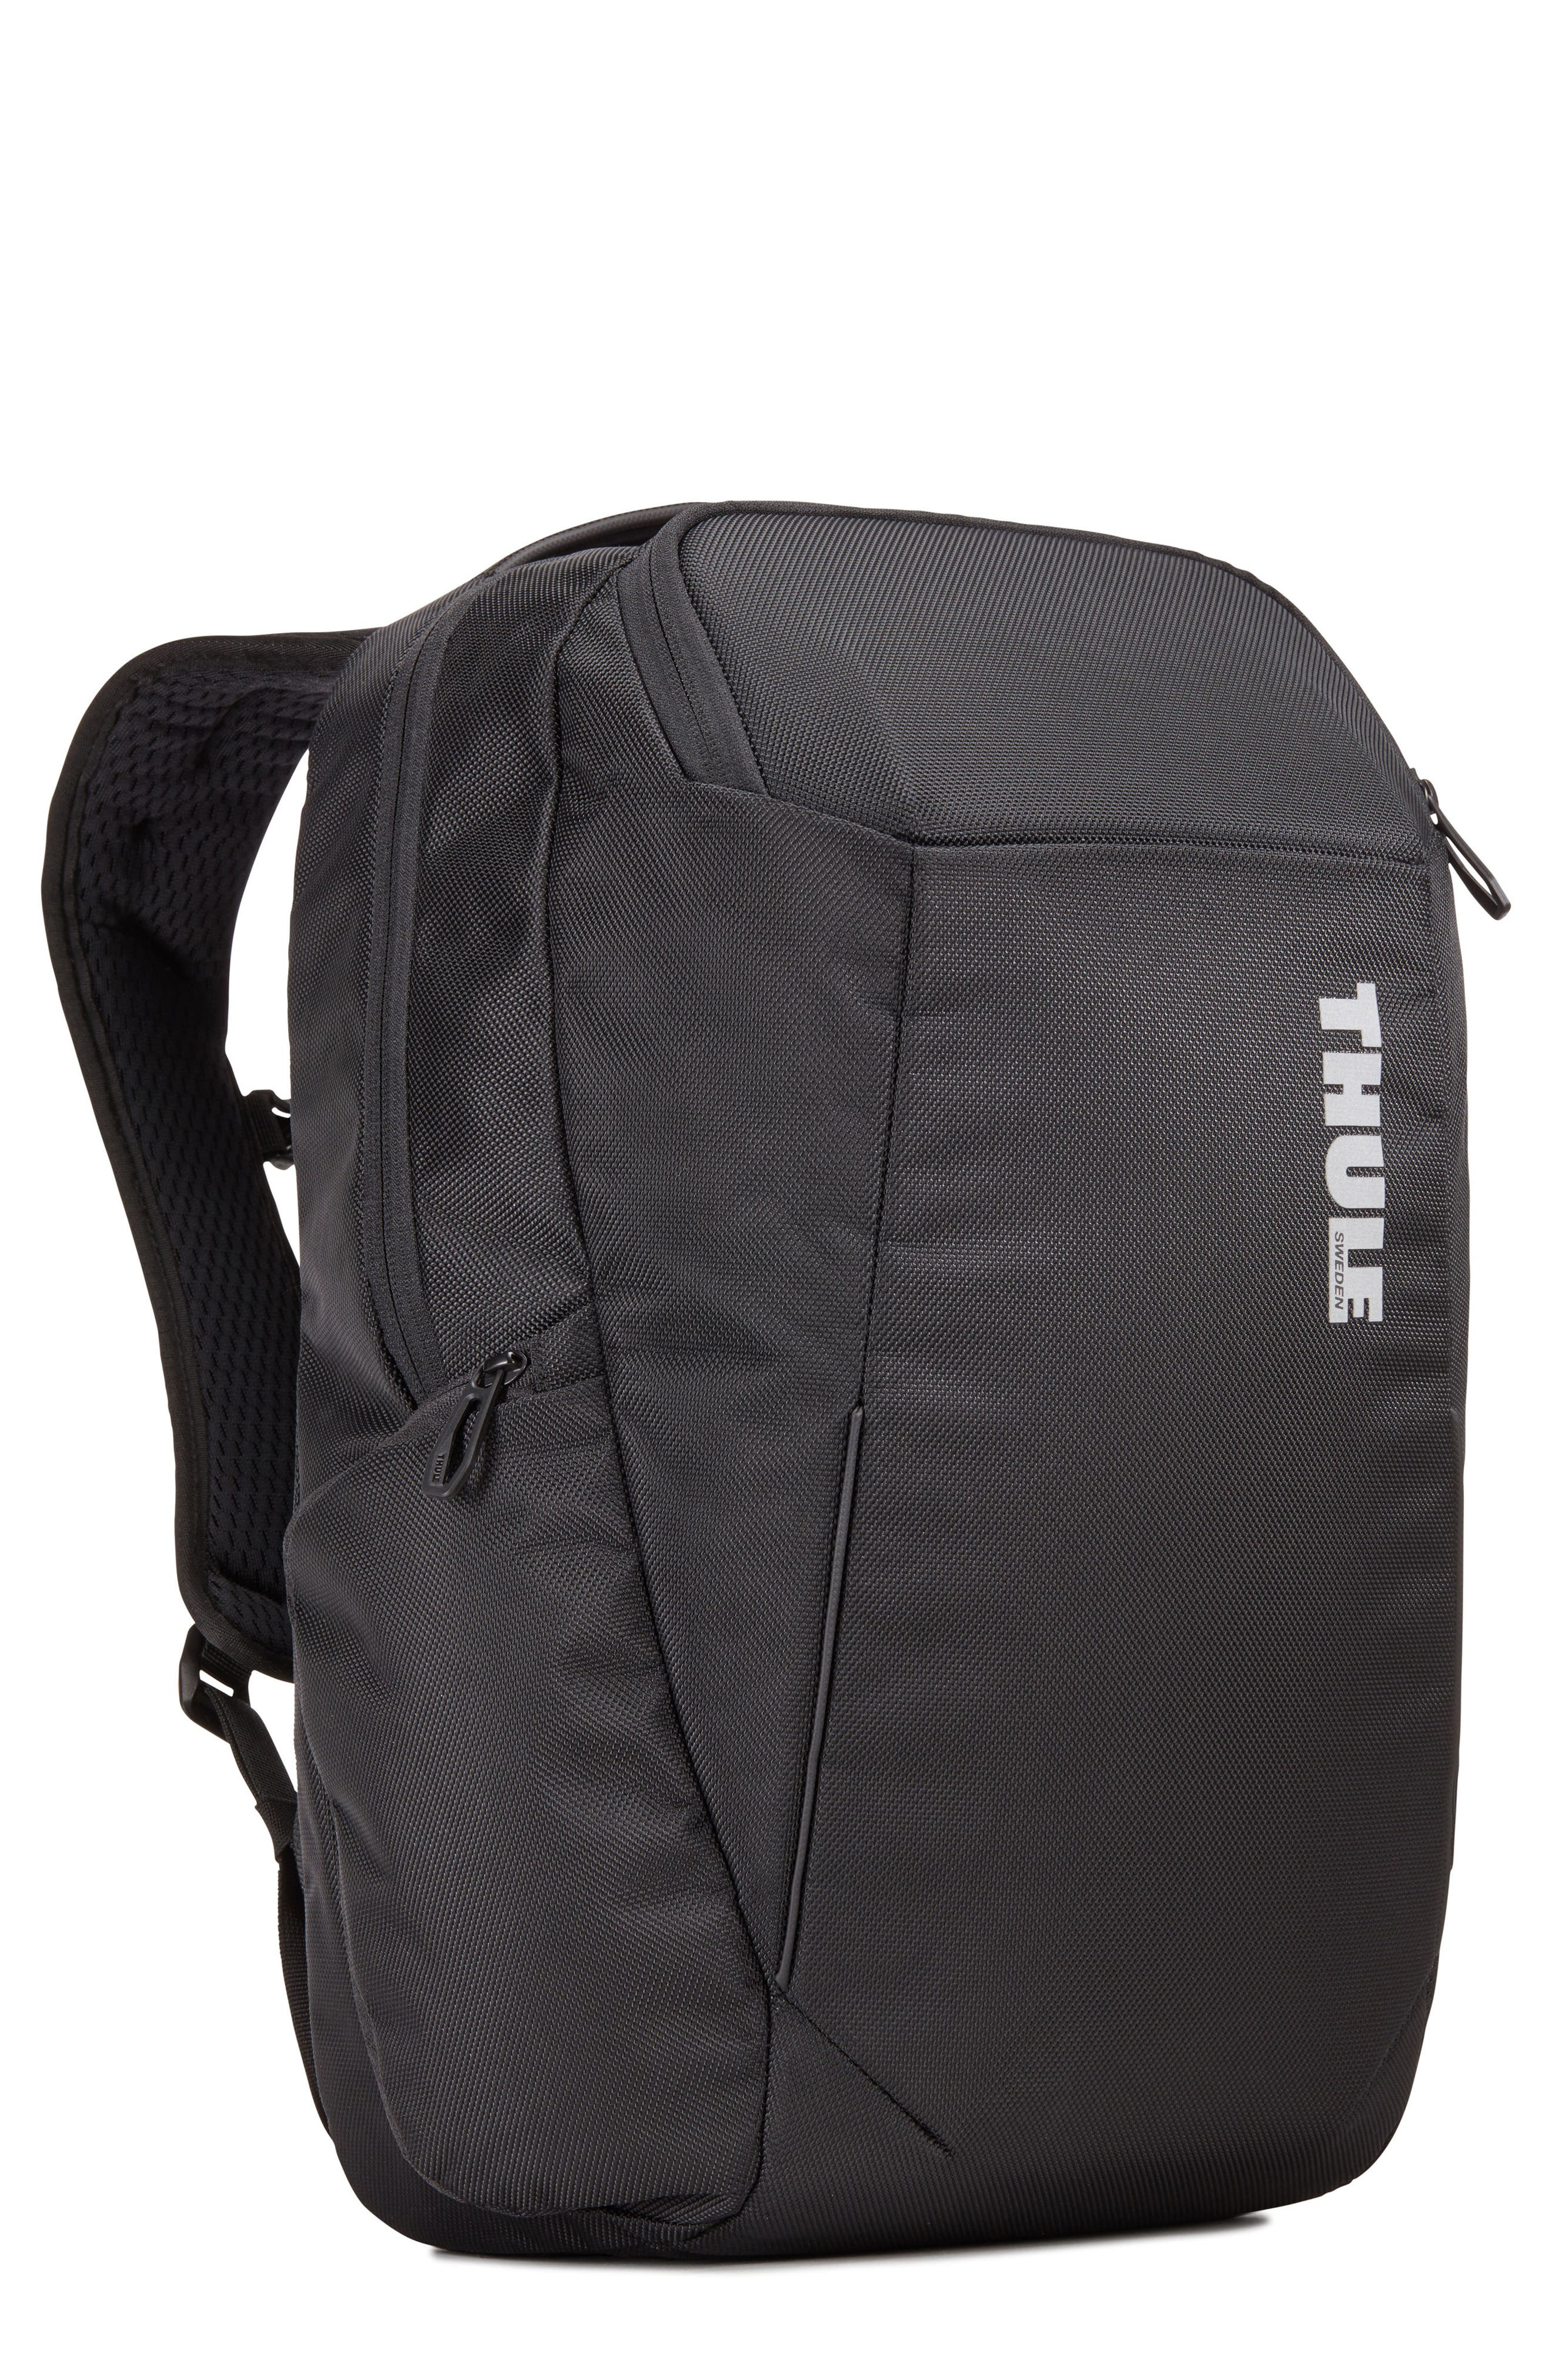 Accent 23-Liter Backpack,                             Main thumbnail 1, color,                             Black